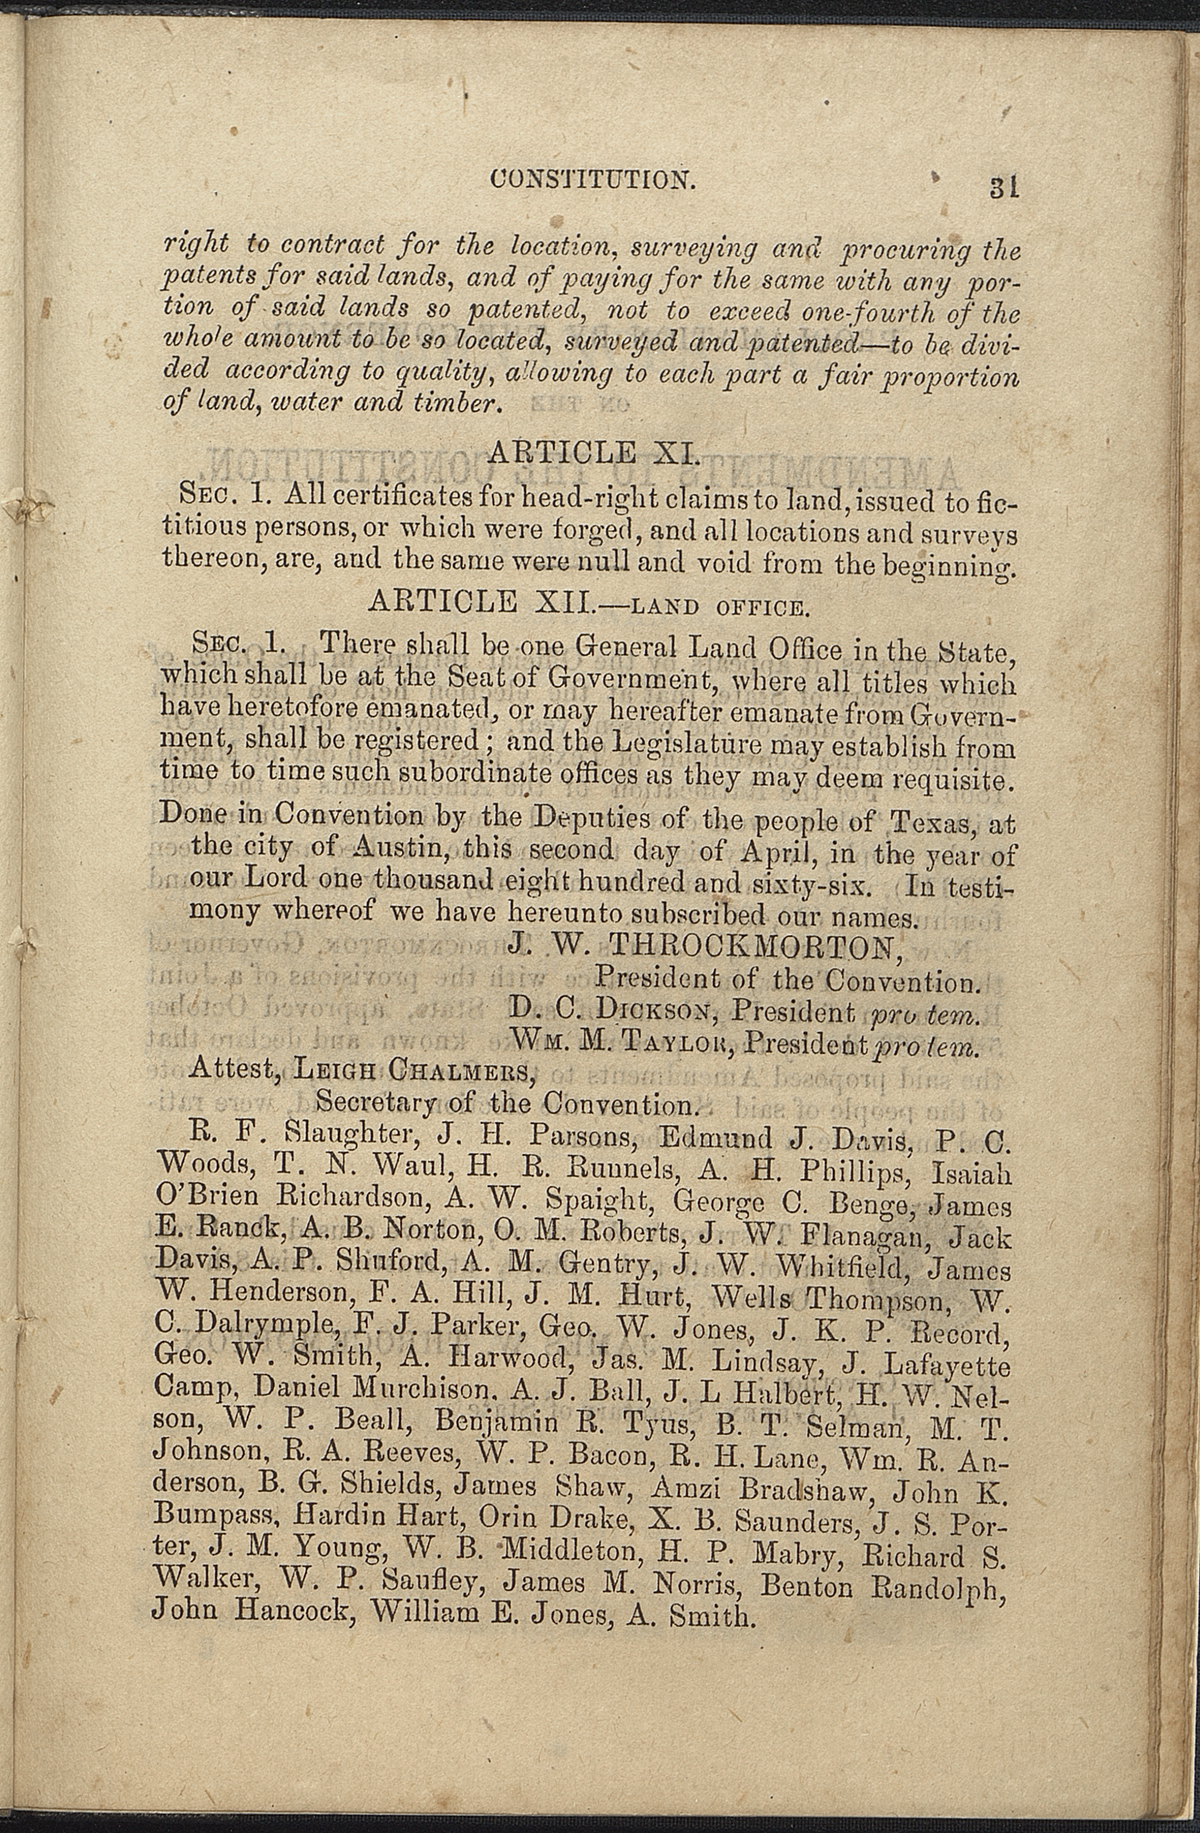 Article XII, Section 1